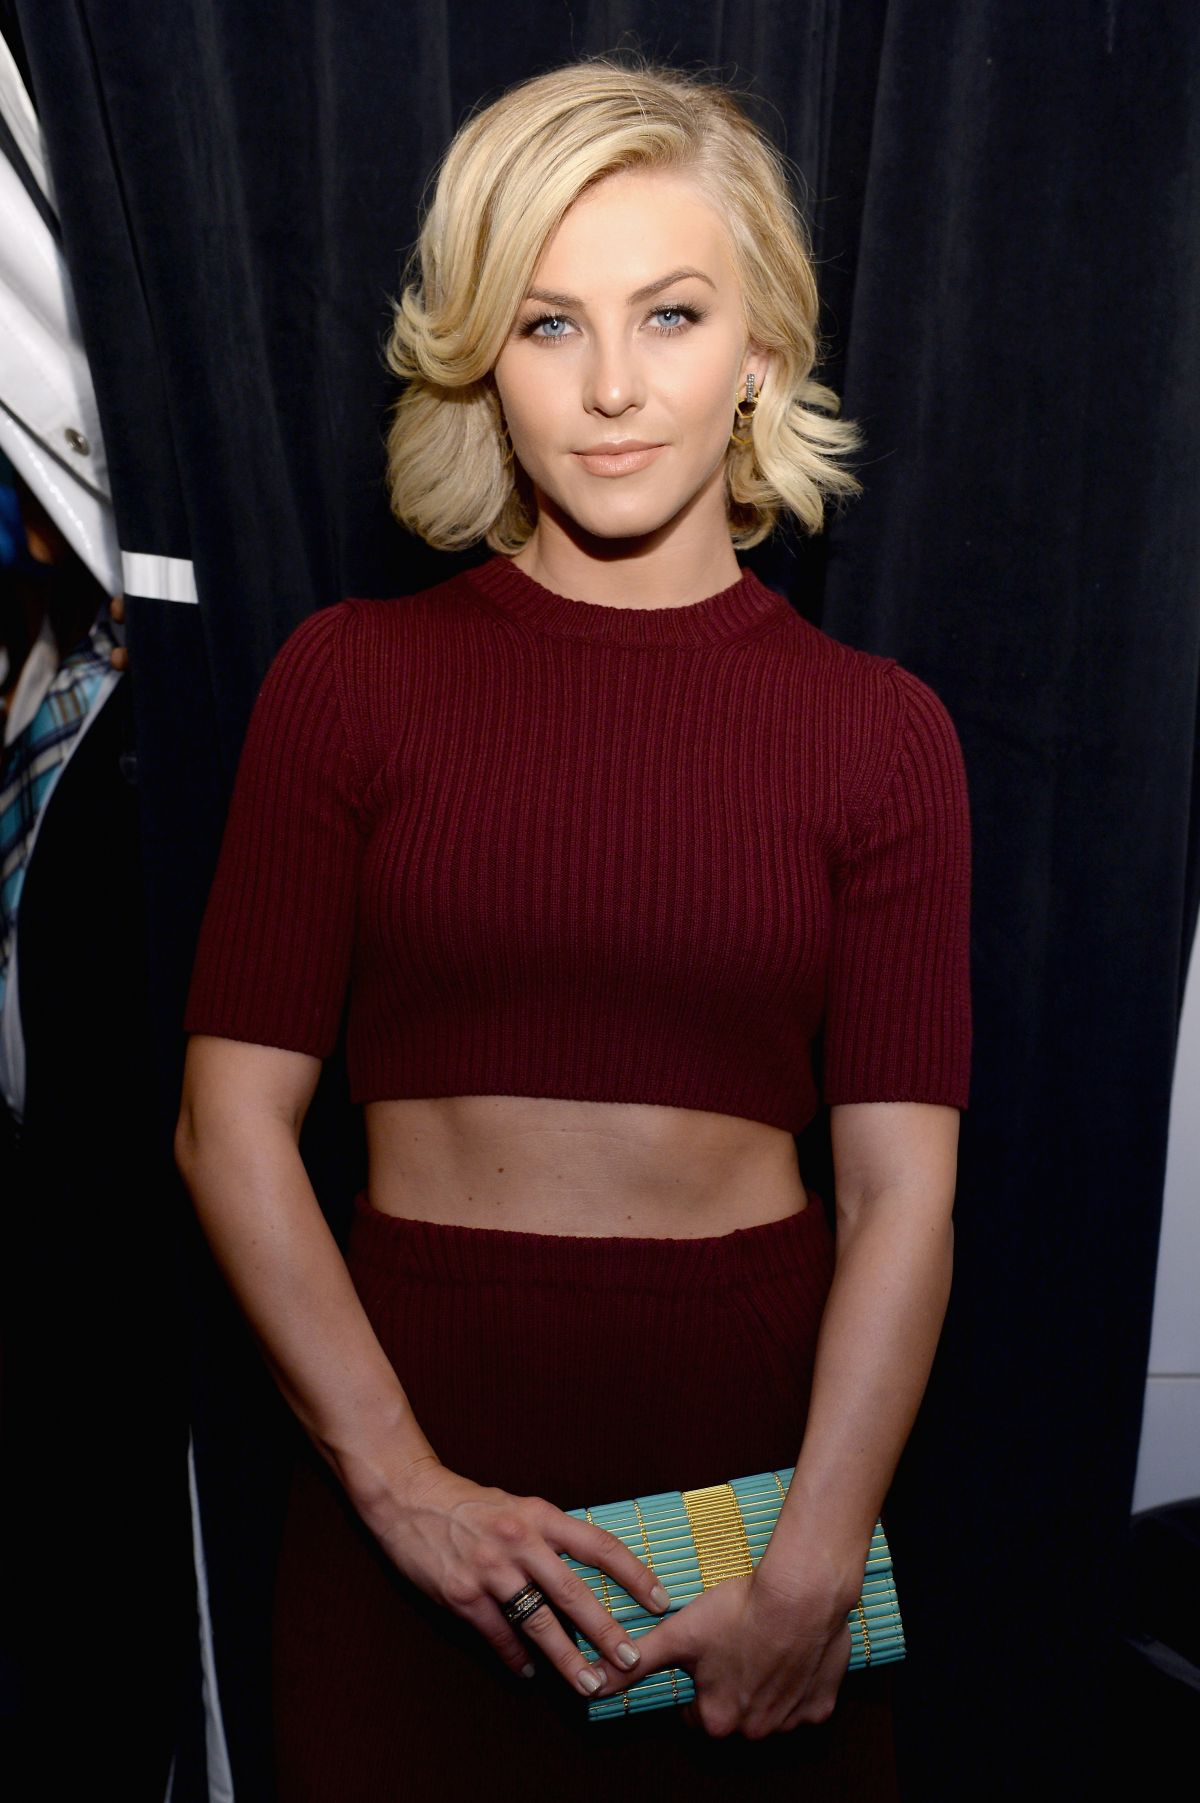 JULIANNE HOUGH at Marc Jacobs Fashion Show in New York